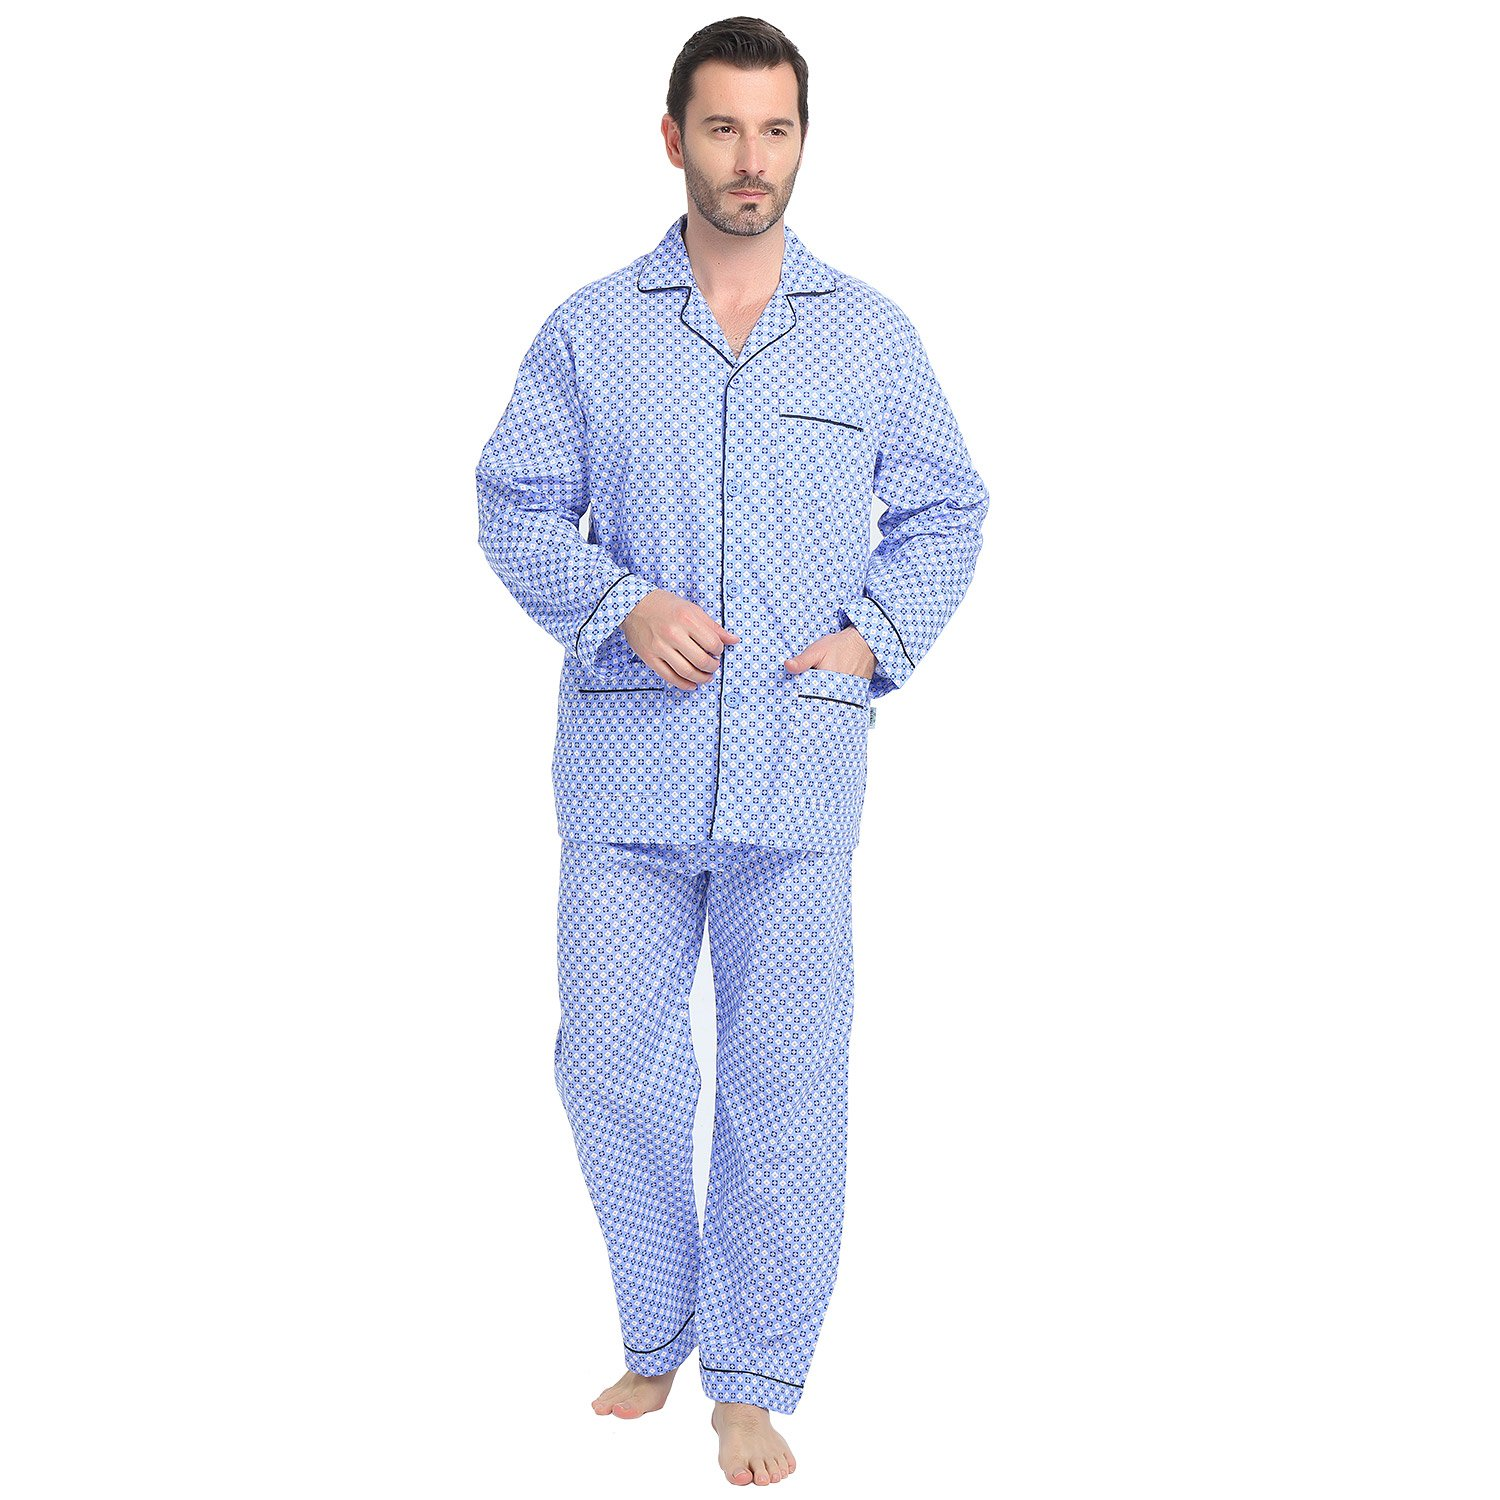 GLOBAL Sleepwear Set for Men, Soft Long Sleeve Top and Pants/Bottoms Pajamas with Elastic Waist